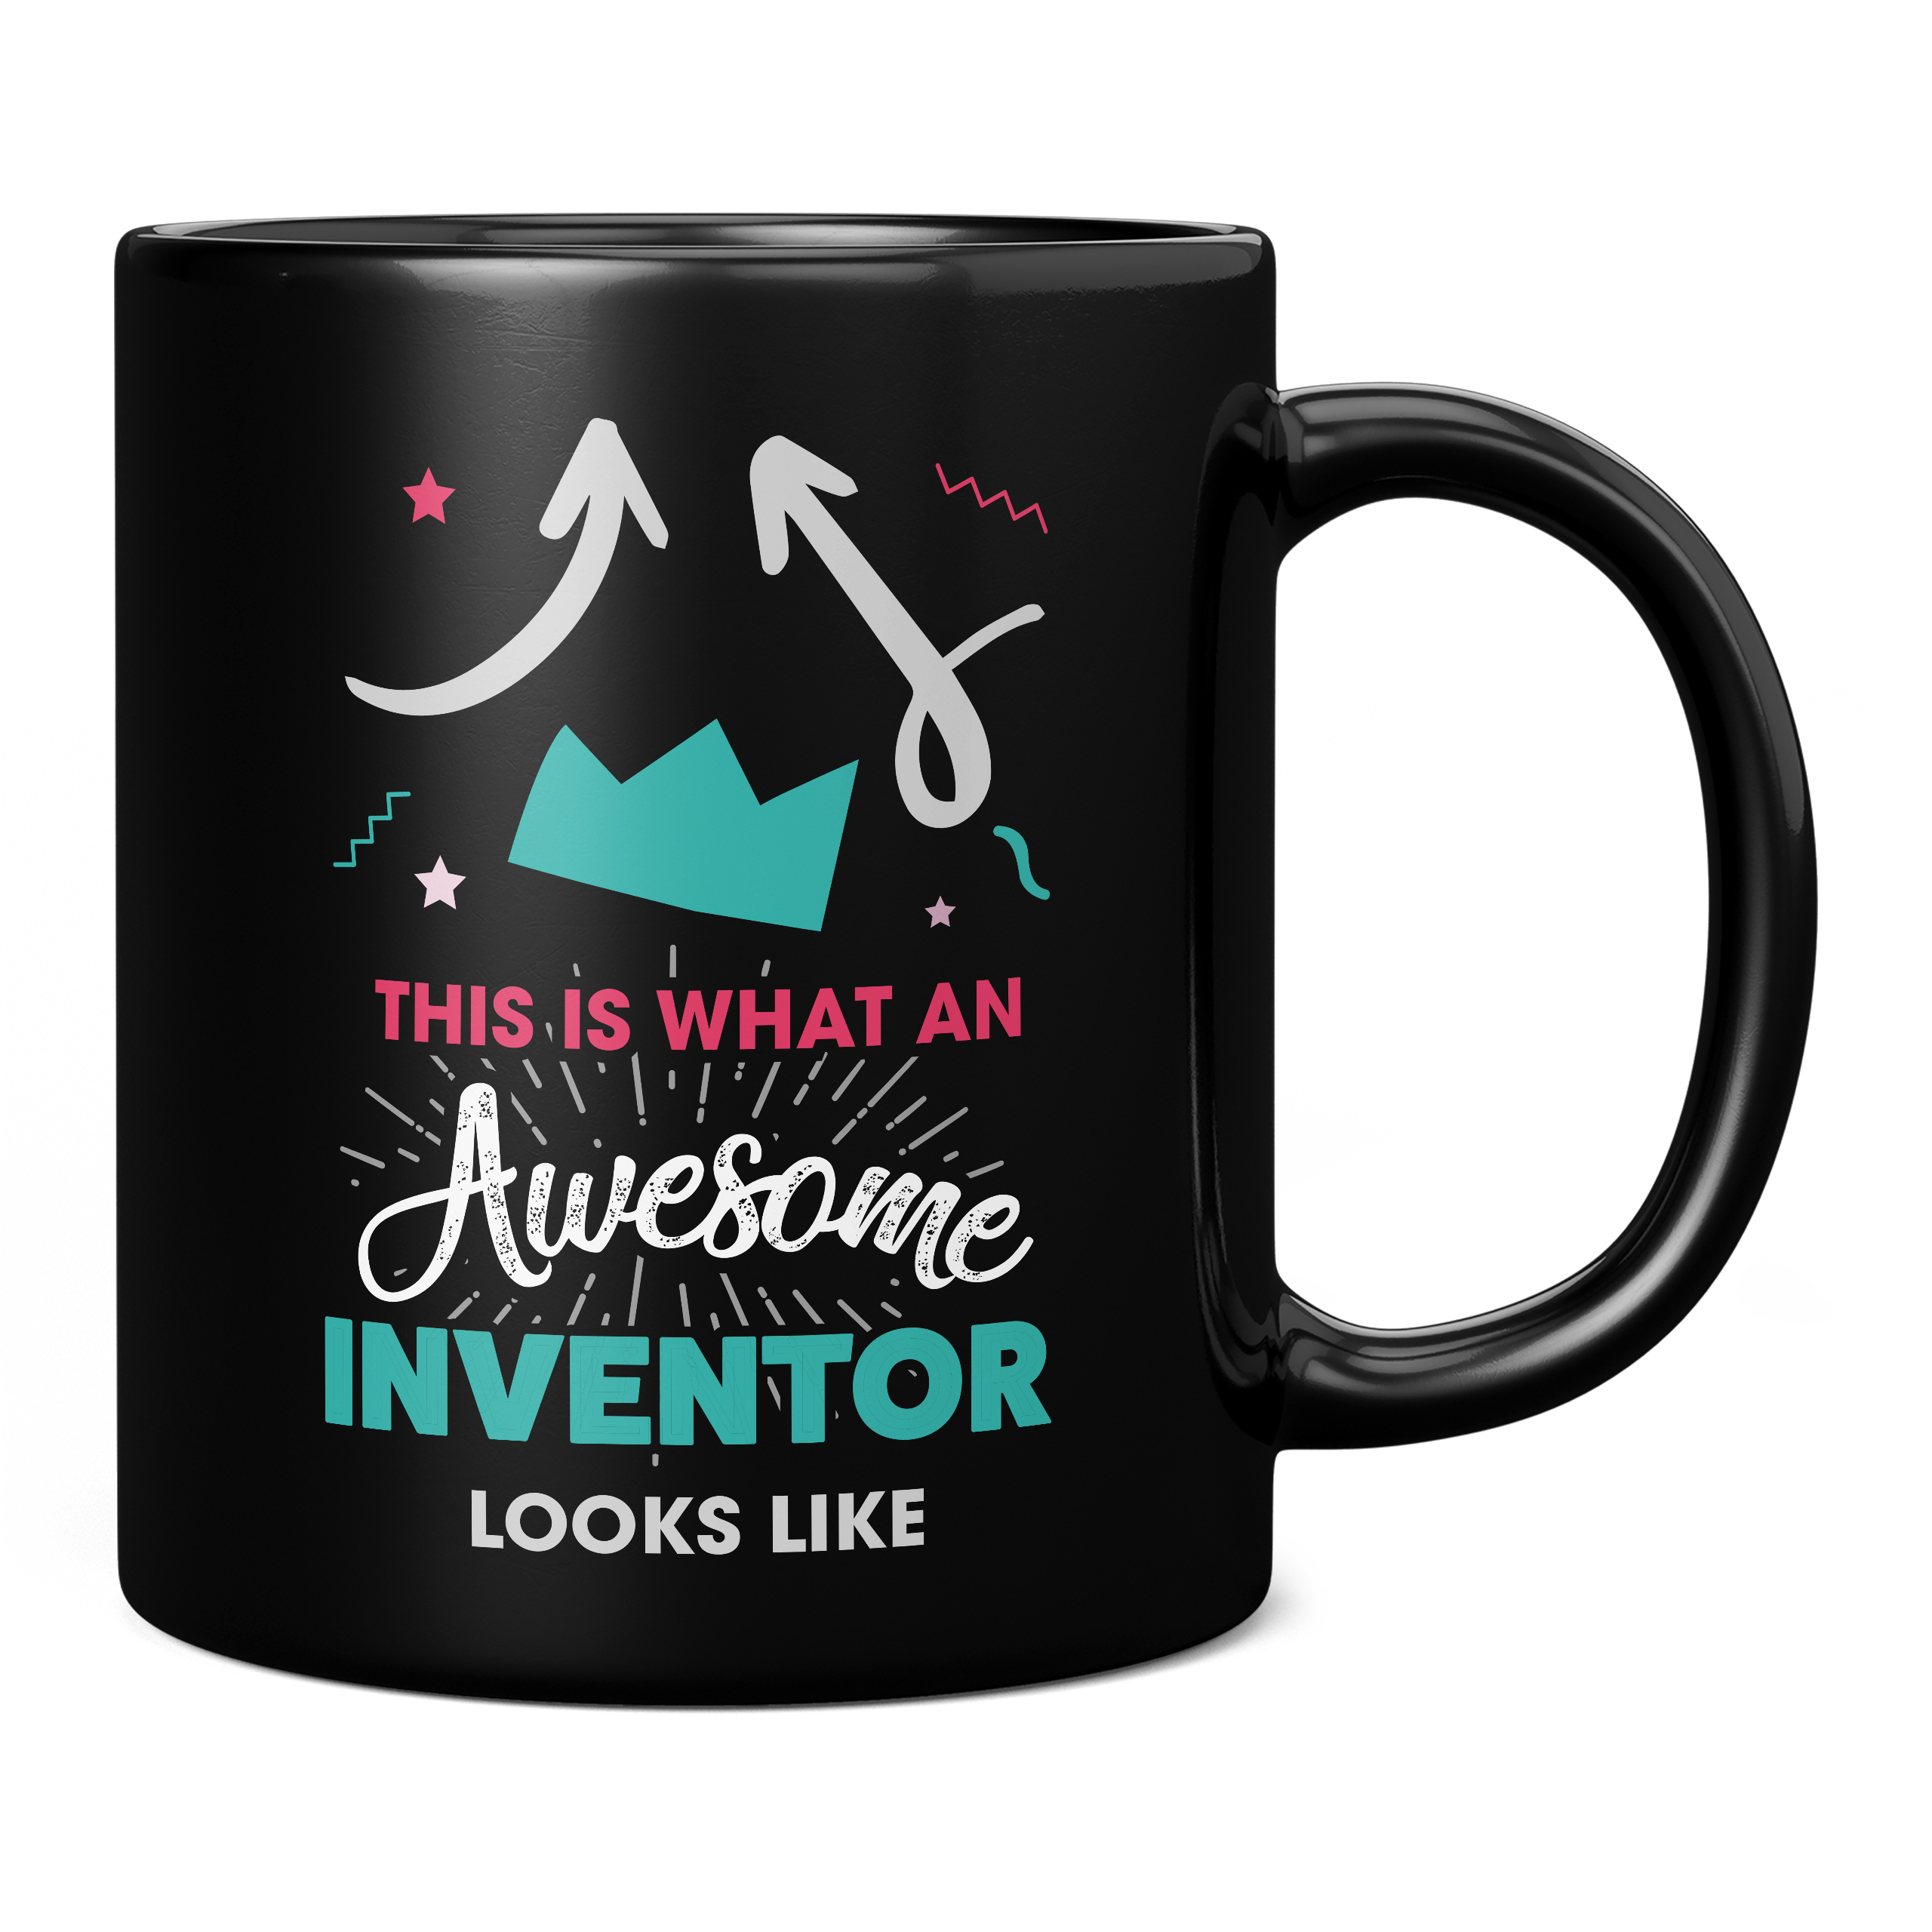 THIS IS WHAT AN AWESOME INVENTOR LOOKS LIKE 11OZ NOVELTY MUG